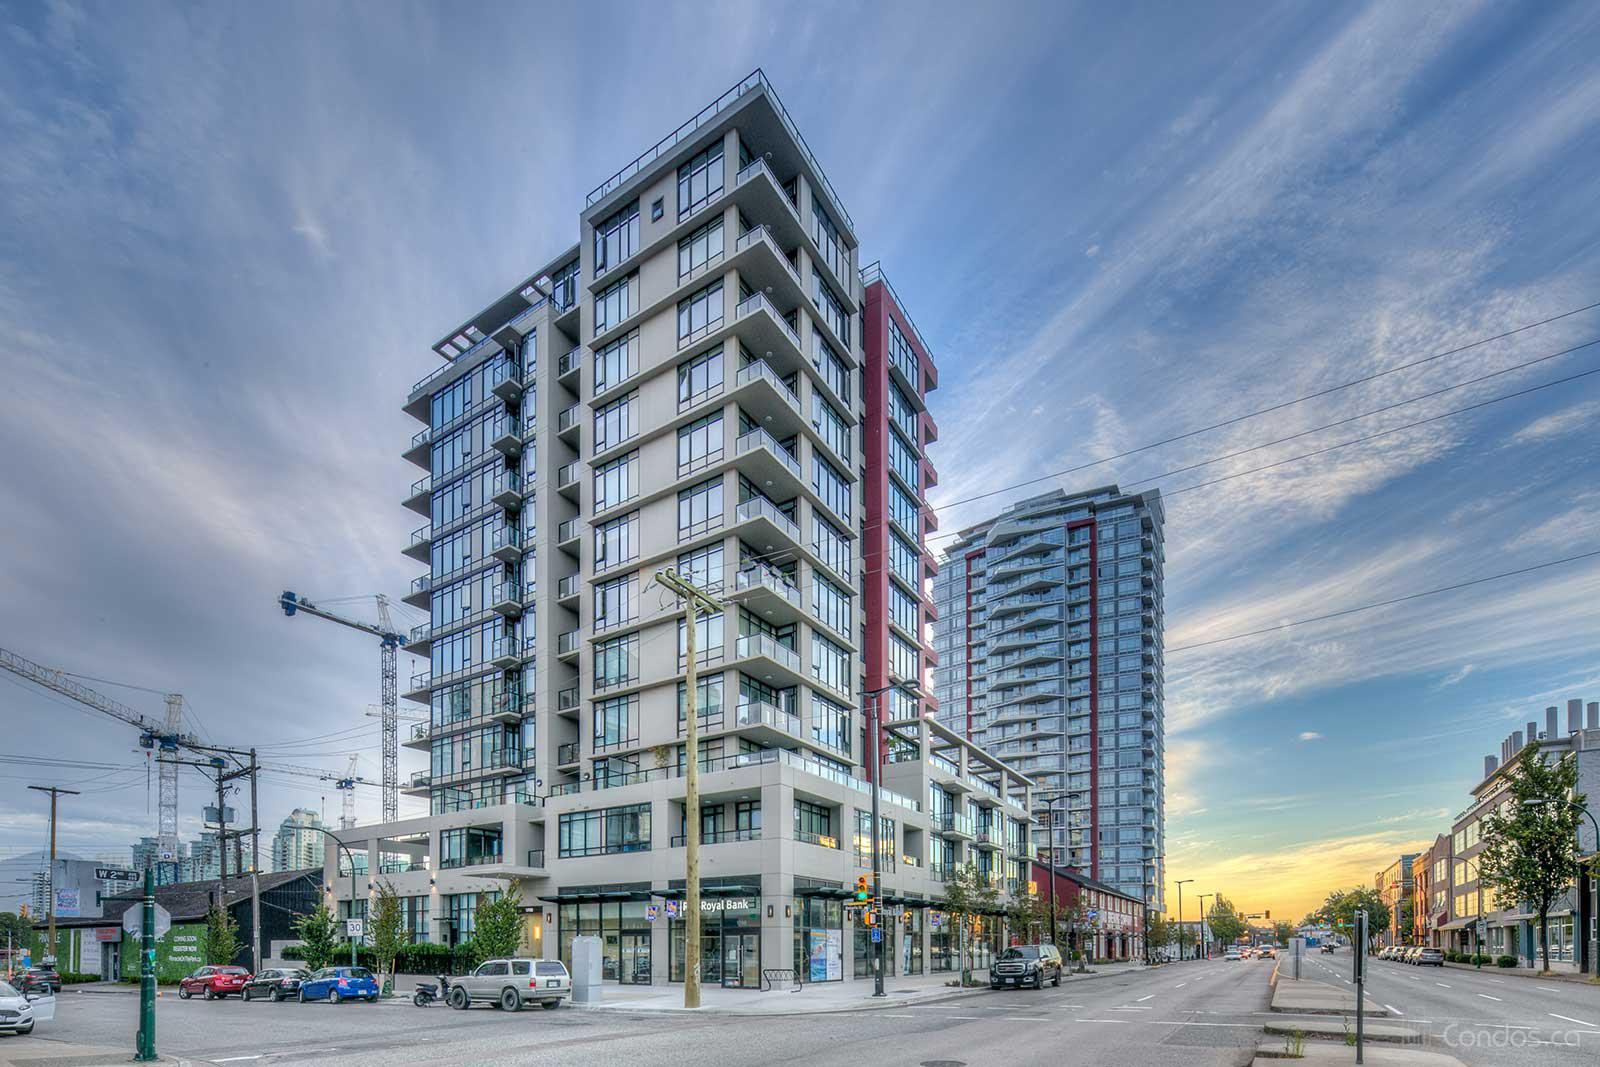 Proximity at 1788 Ontario St, Vancouver 0